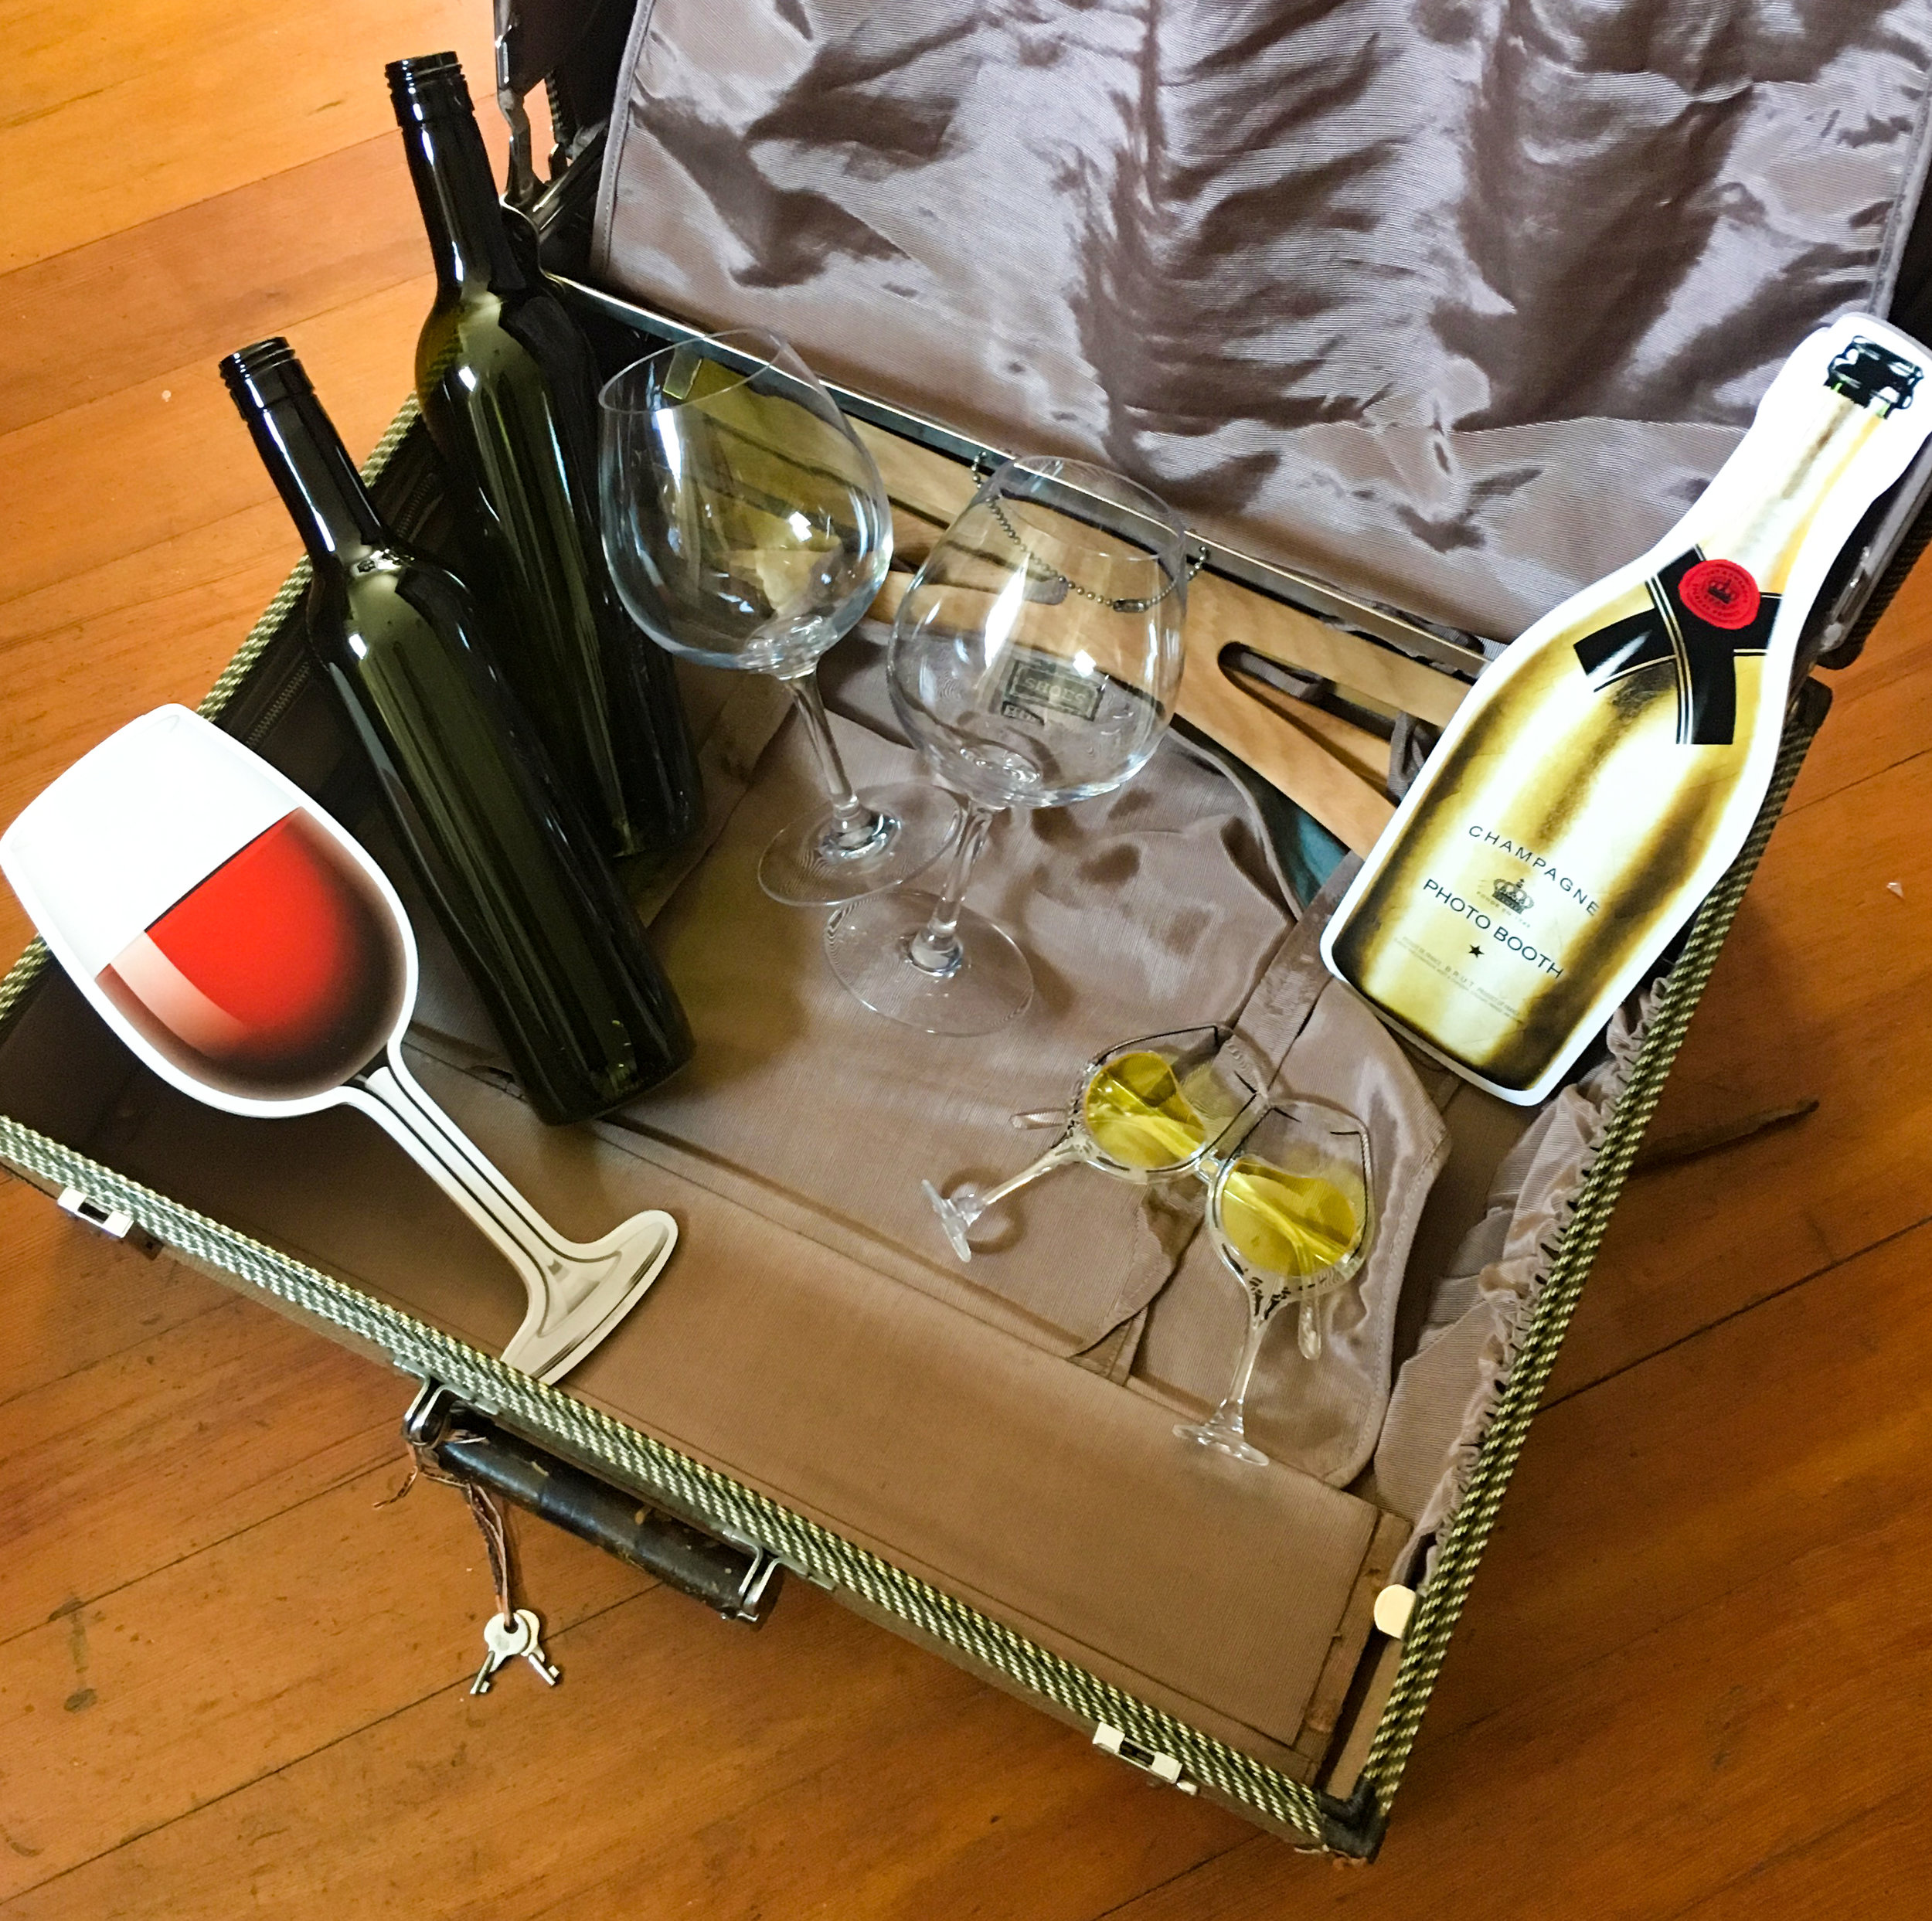 Wine Country Props - Hand-selected props from those in the know! Grapes,chalices, wine glasses, inflatable champagne bottle, wine bottles, wine sunglasses, wine glass signs, green & clear wine bottles, wine country-themed stick props!